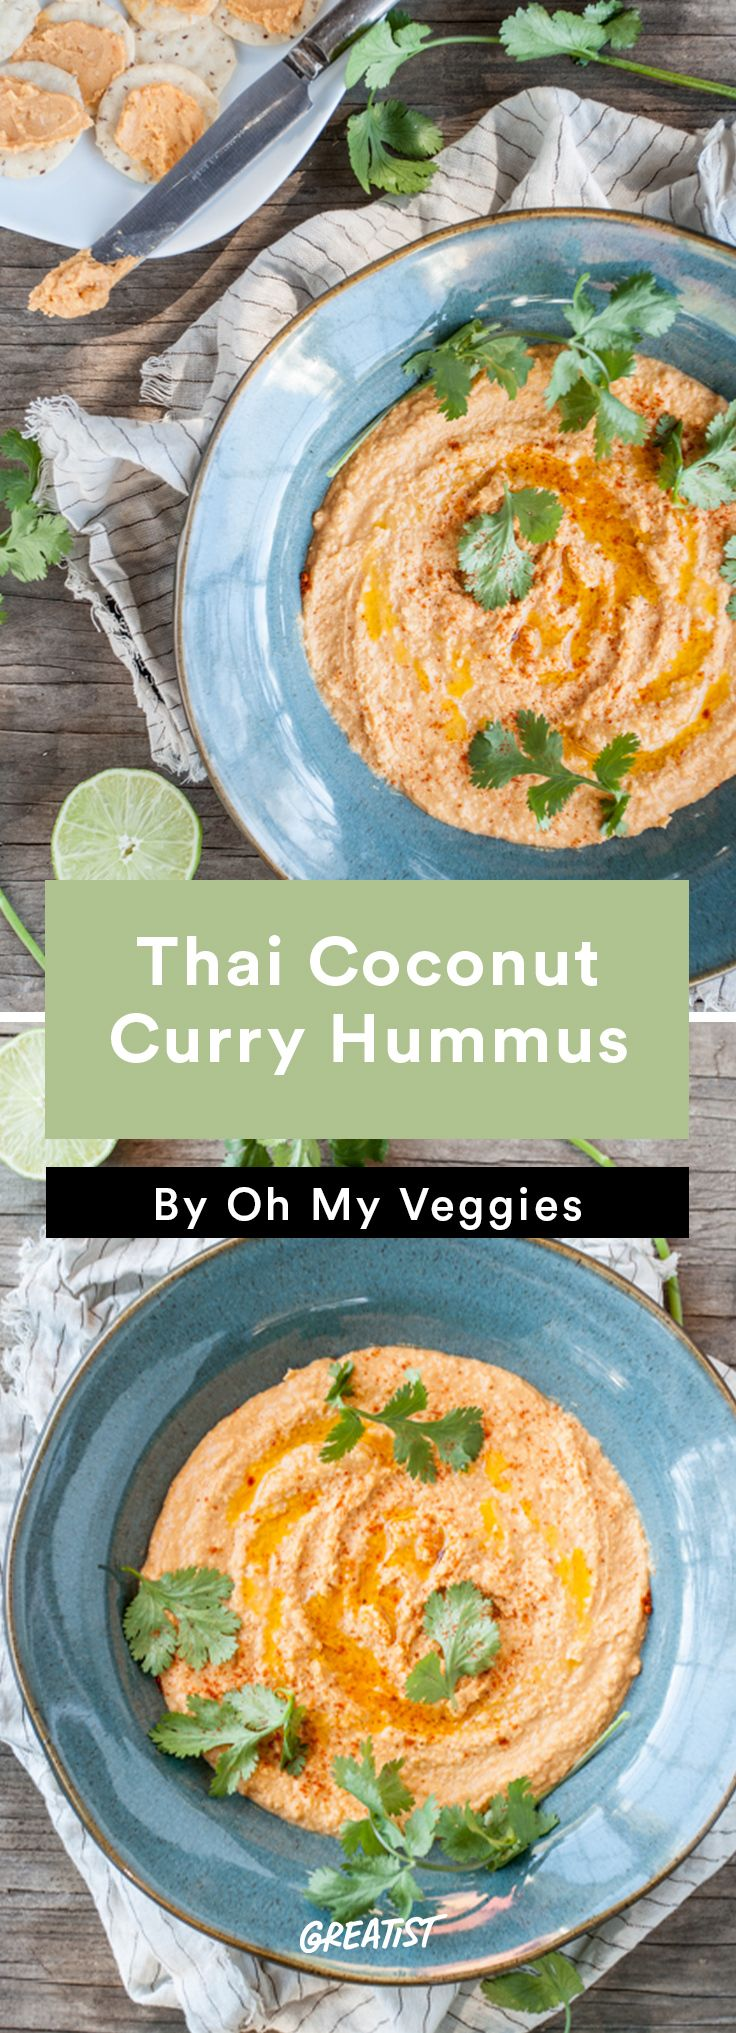 7. Thai Coconut Curry Hummus #healthy #dip #recipes http://greatist.com/eat/dip-recipes-way-better-than-the-classics